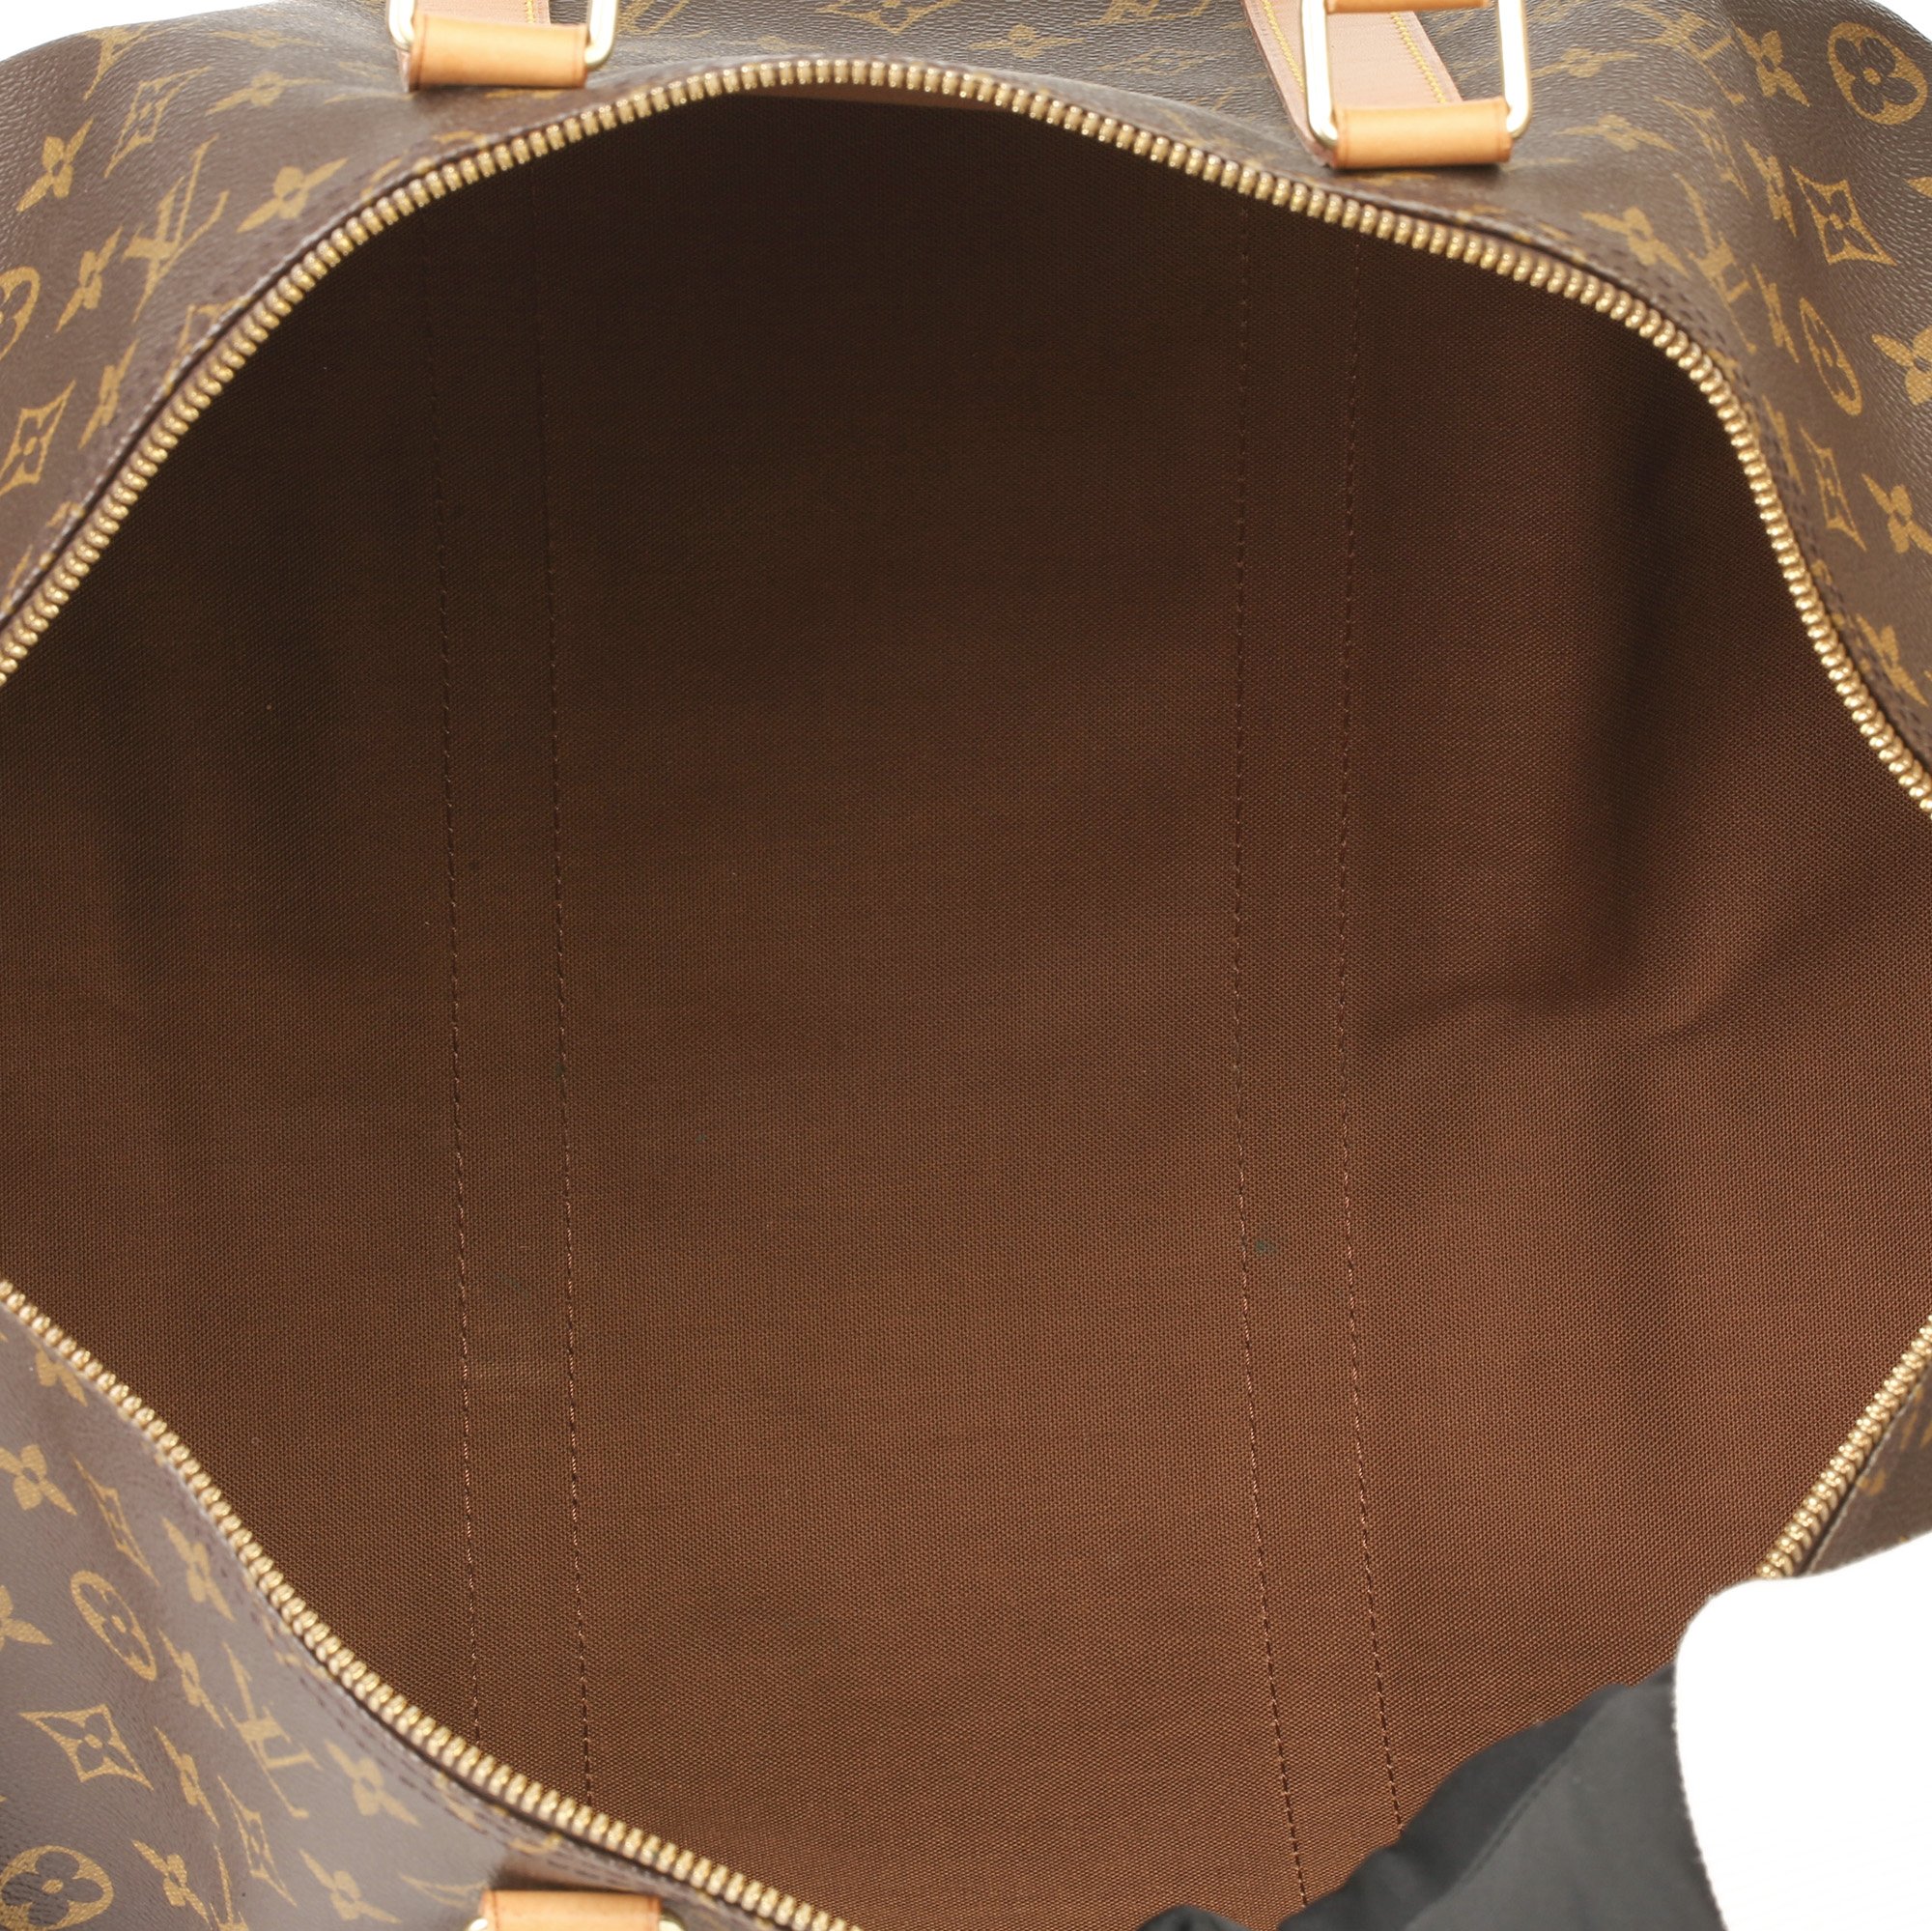 Louis Vuitton Brown Monogram Coated Canvas & Vachetta Leather Vintage Keepall 50 - Image 3 of 11